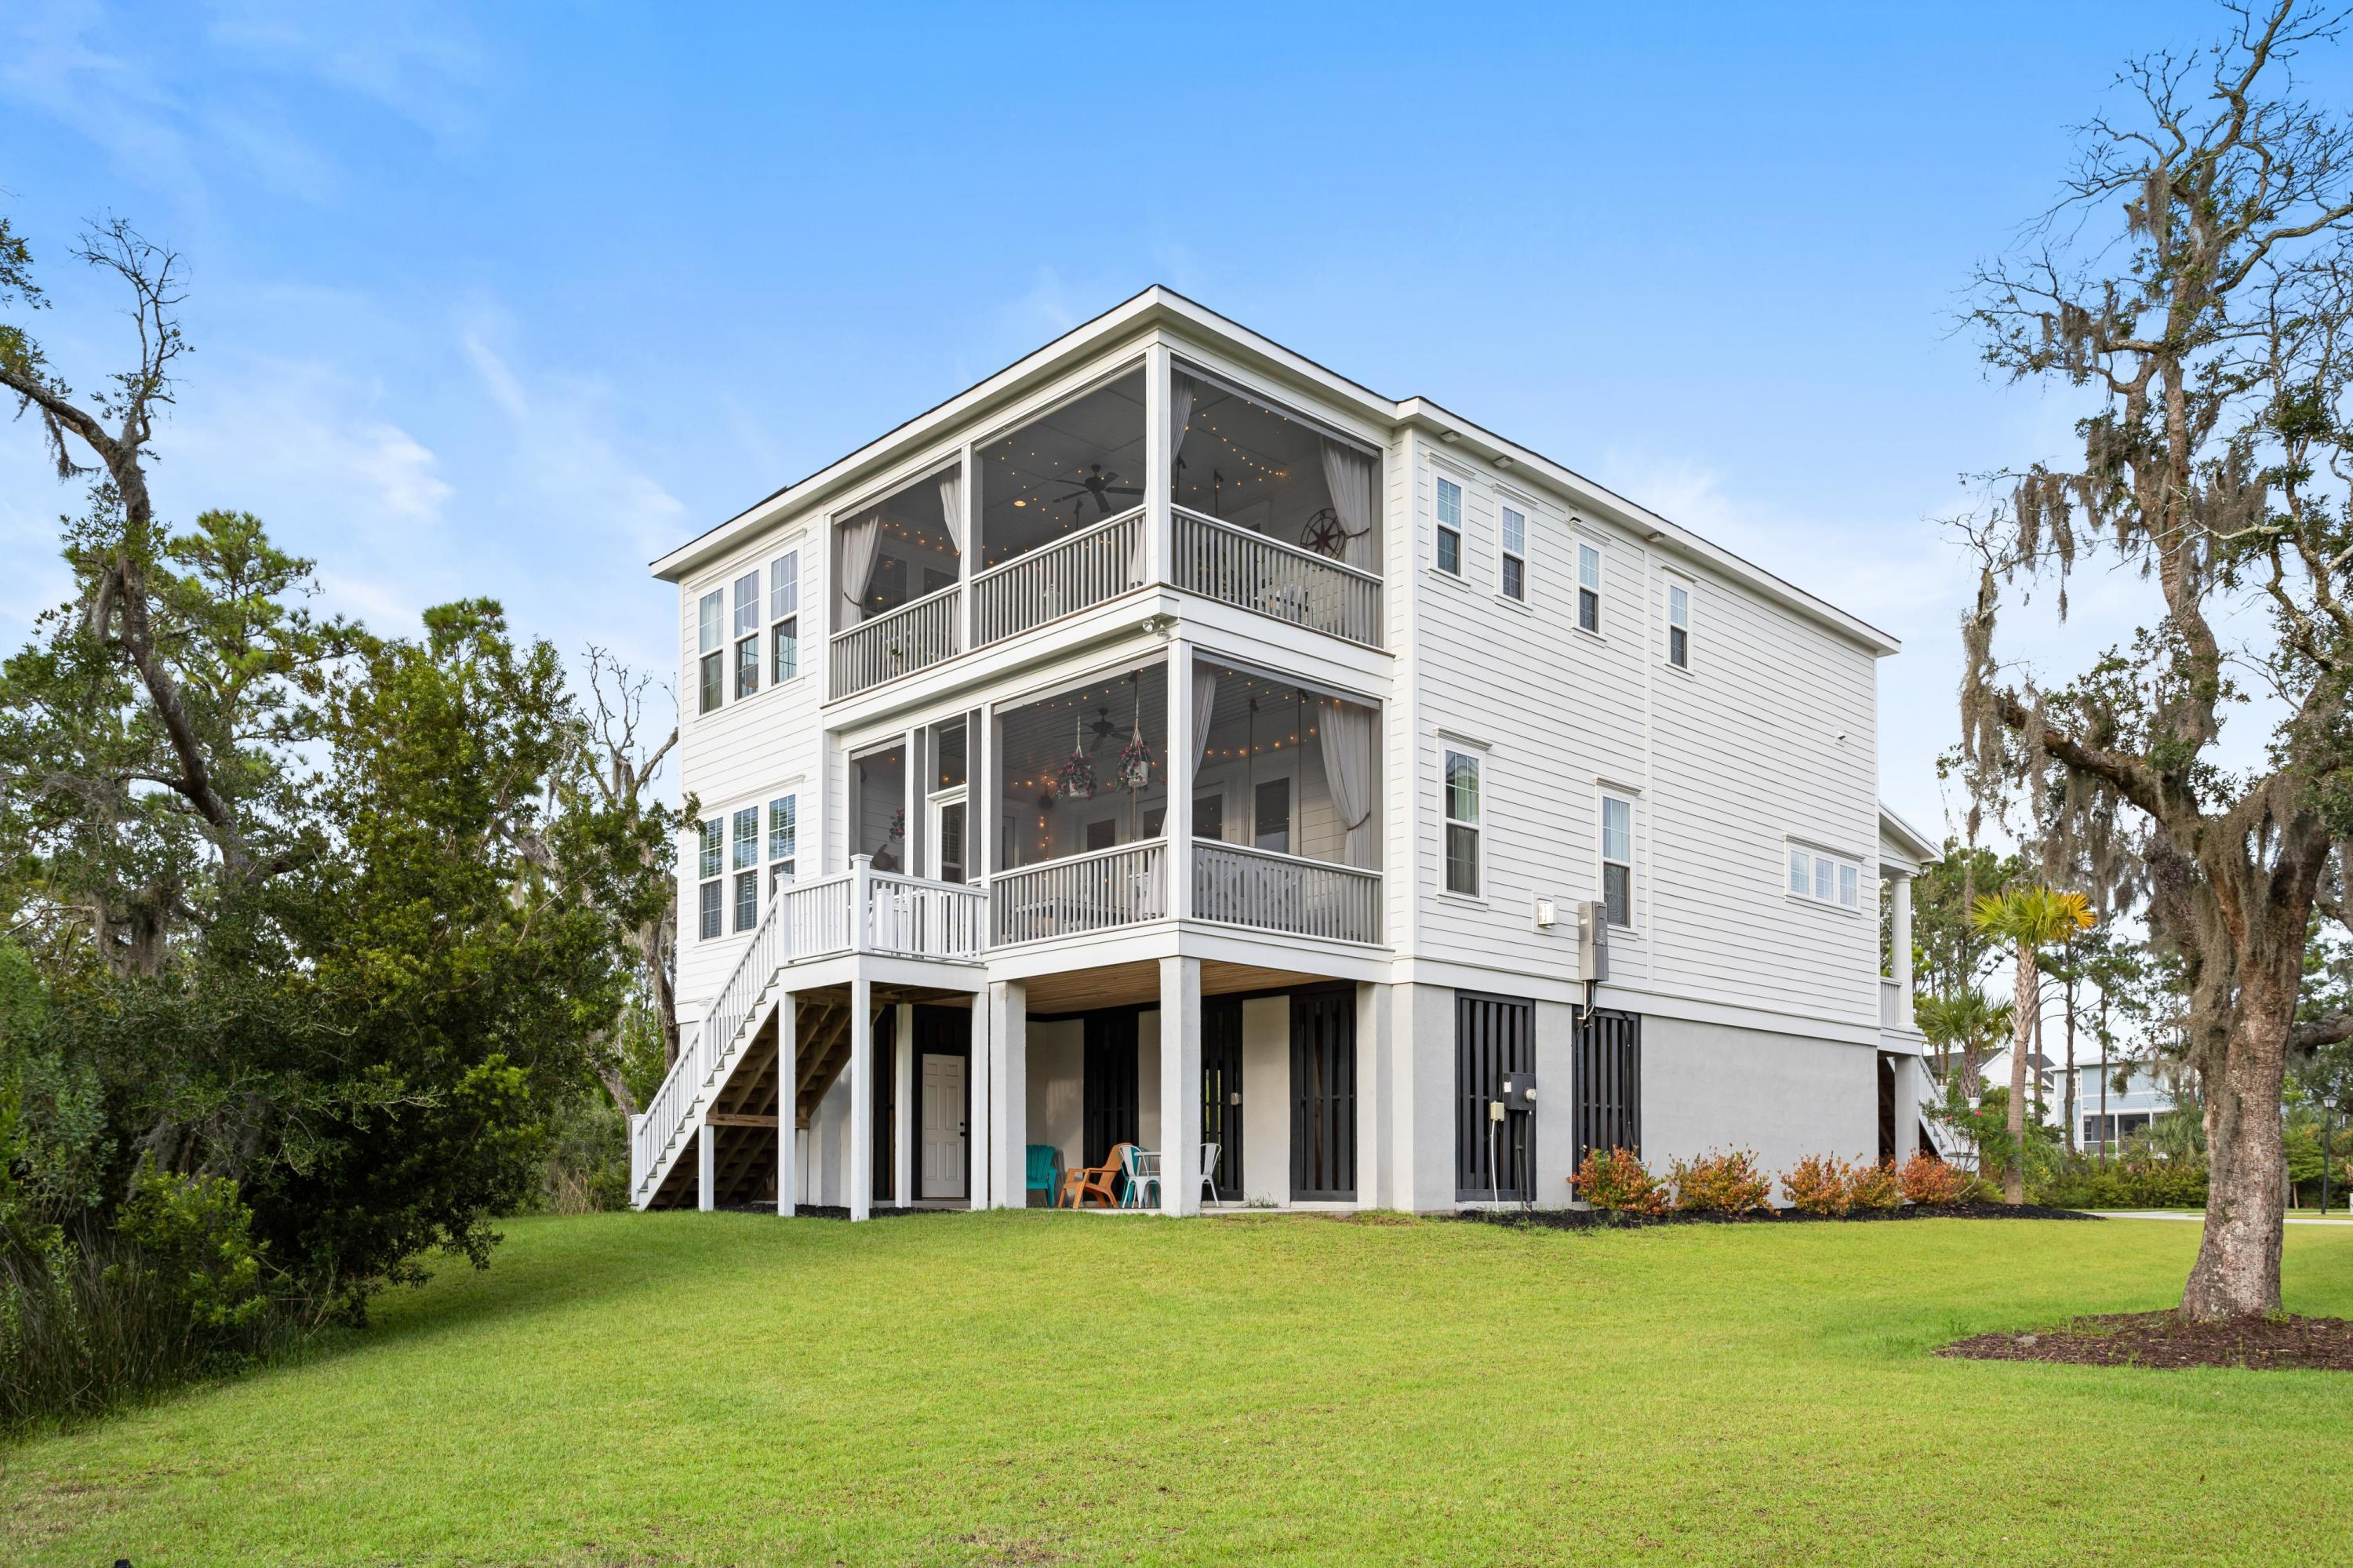 Stratton by the Sound Homes For Sale - 1400 Stratton, Mount Pleasant, SC - 47